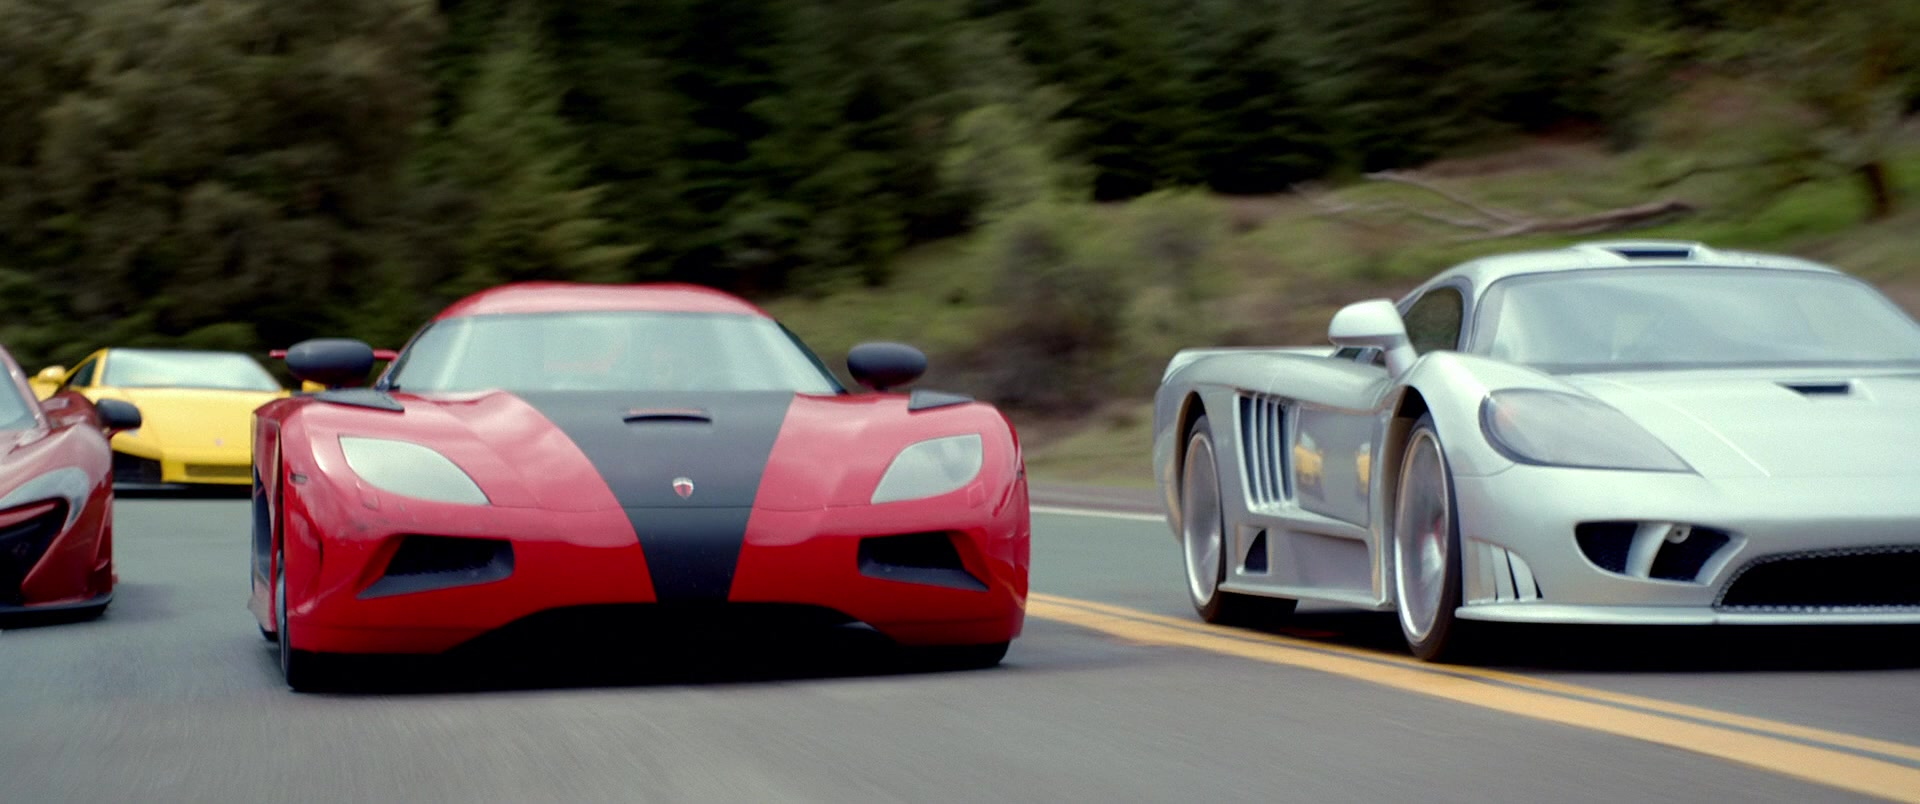 Koenigsegg Agera R Red Car Driven By Aaron Paul In Need For Speed